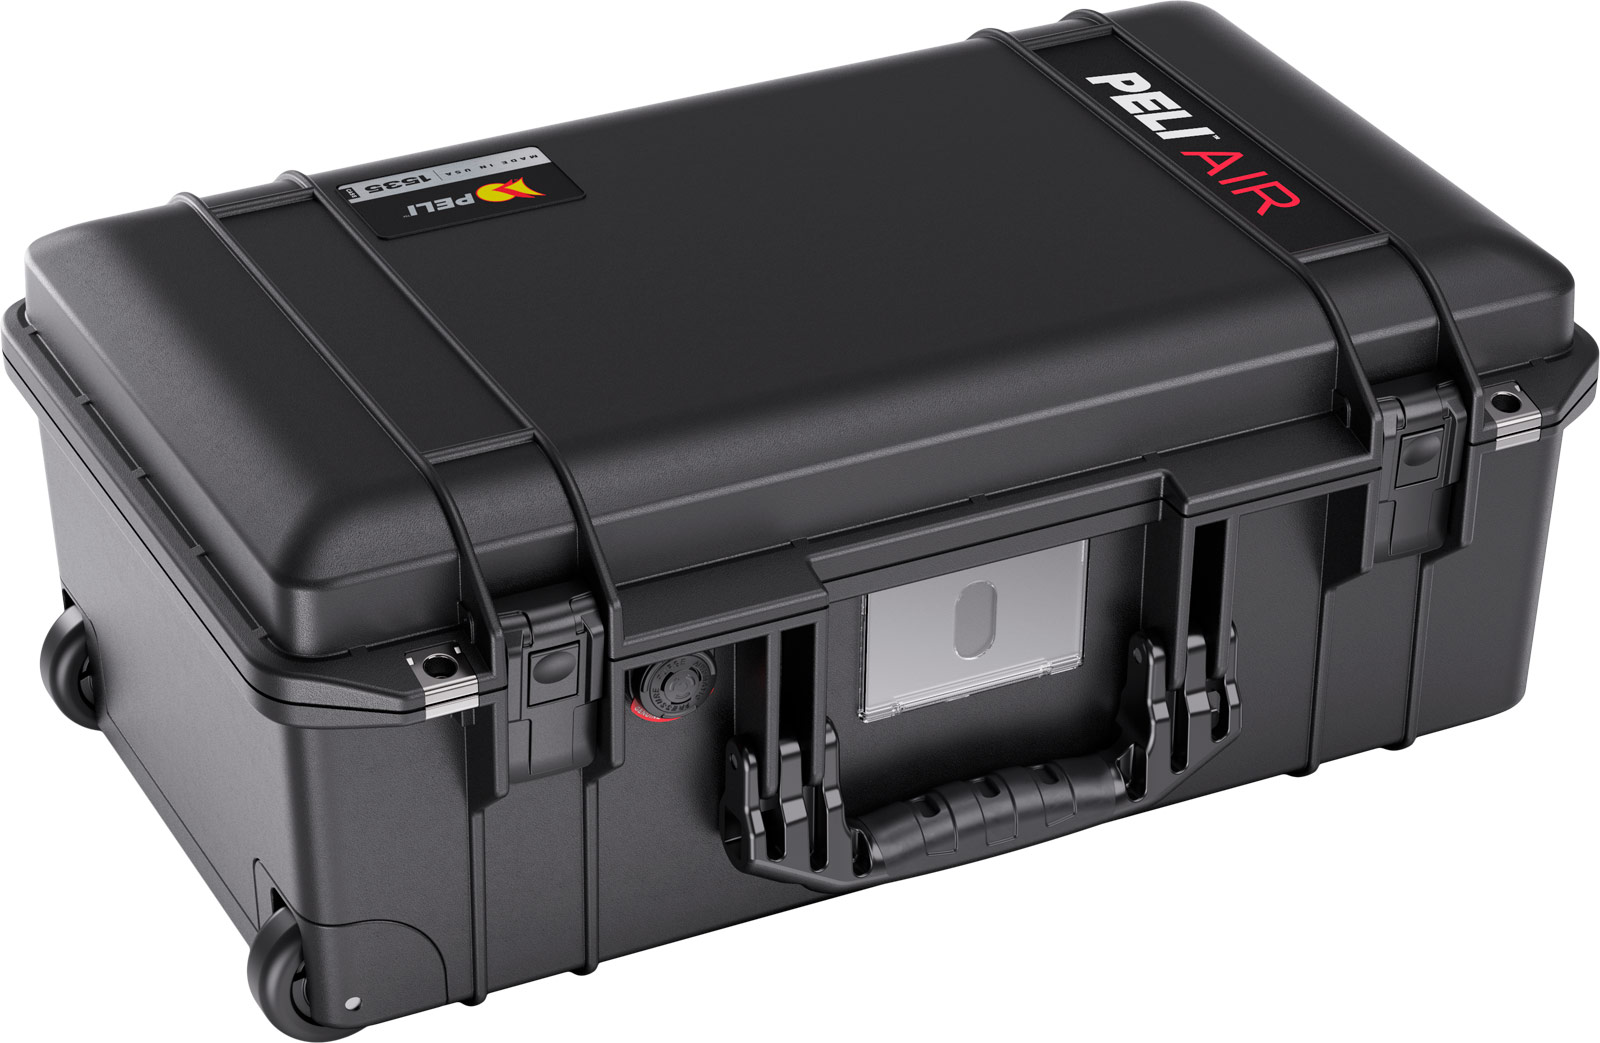 peli 1535 air case pelicase